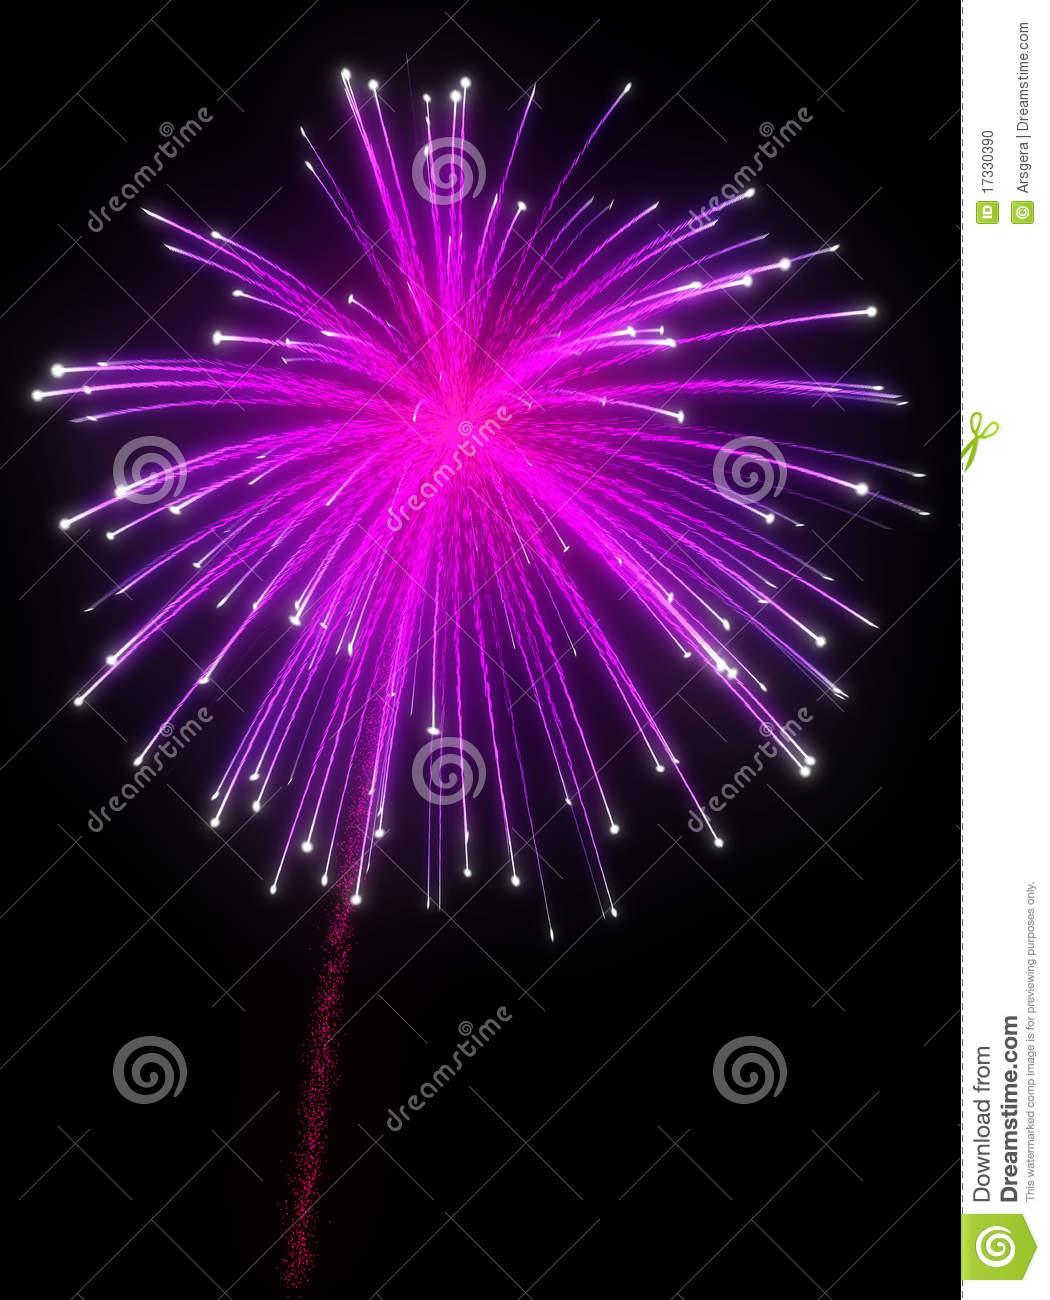 Festive Purple Fireworks At Night Stock Photo - Image: 17330390